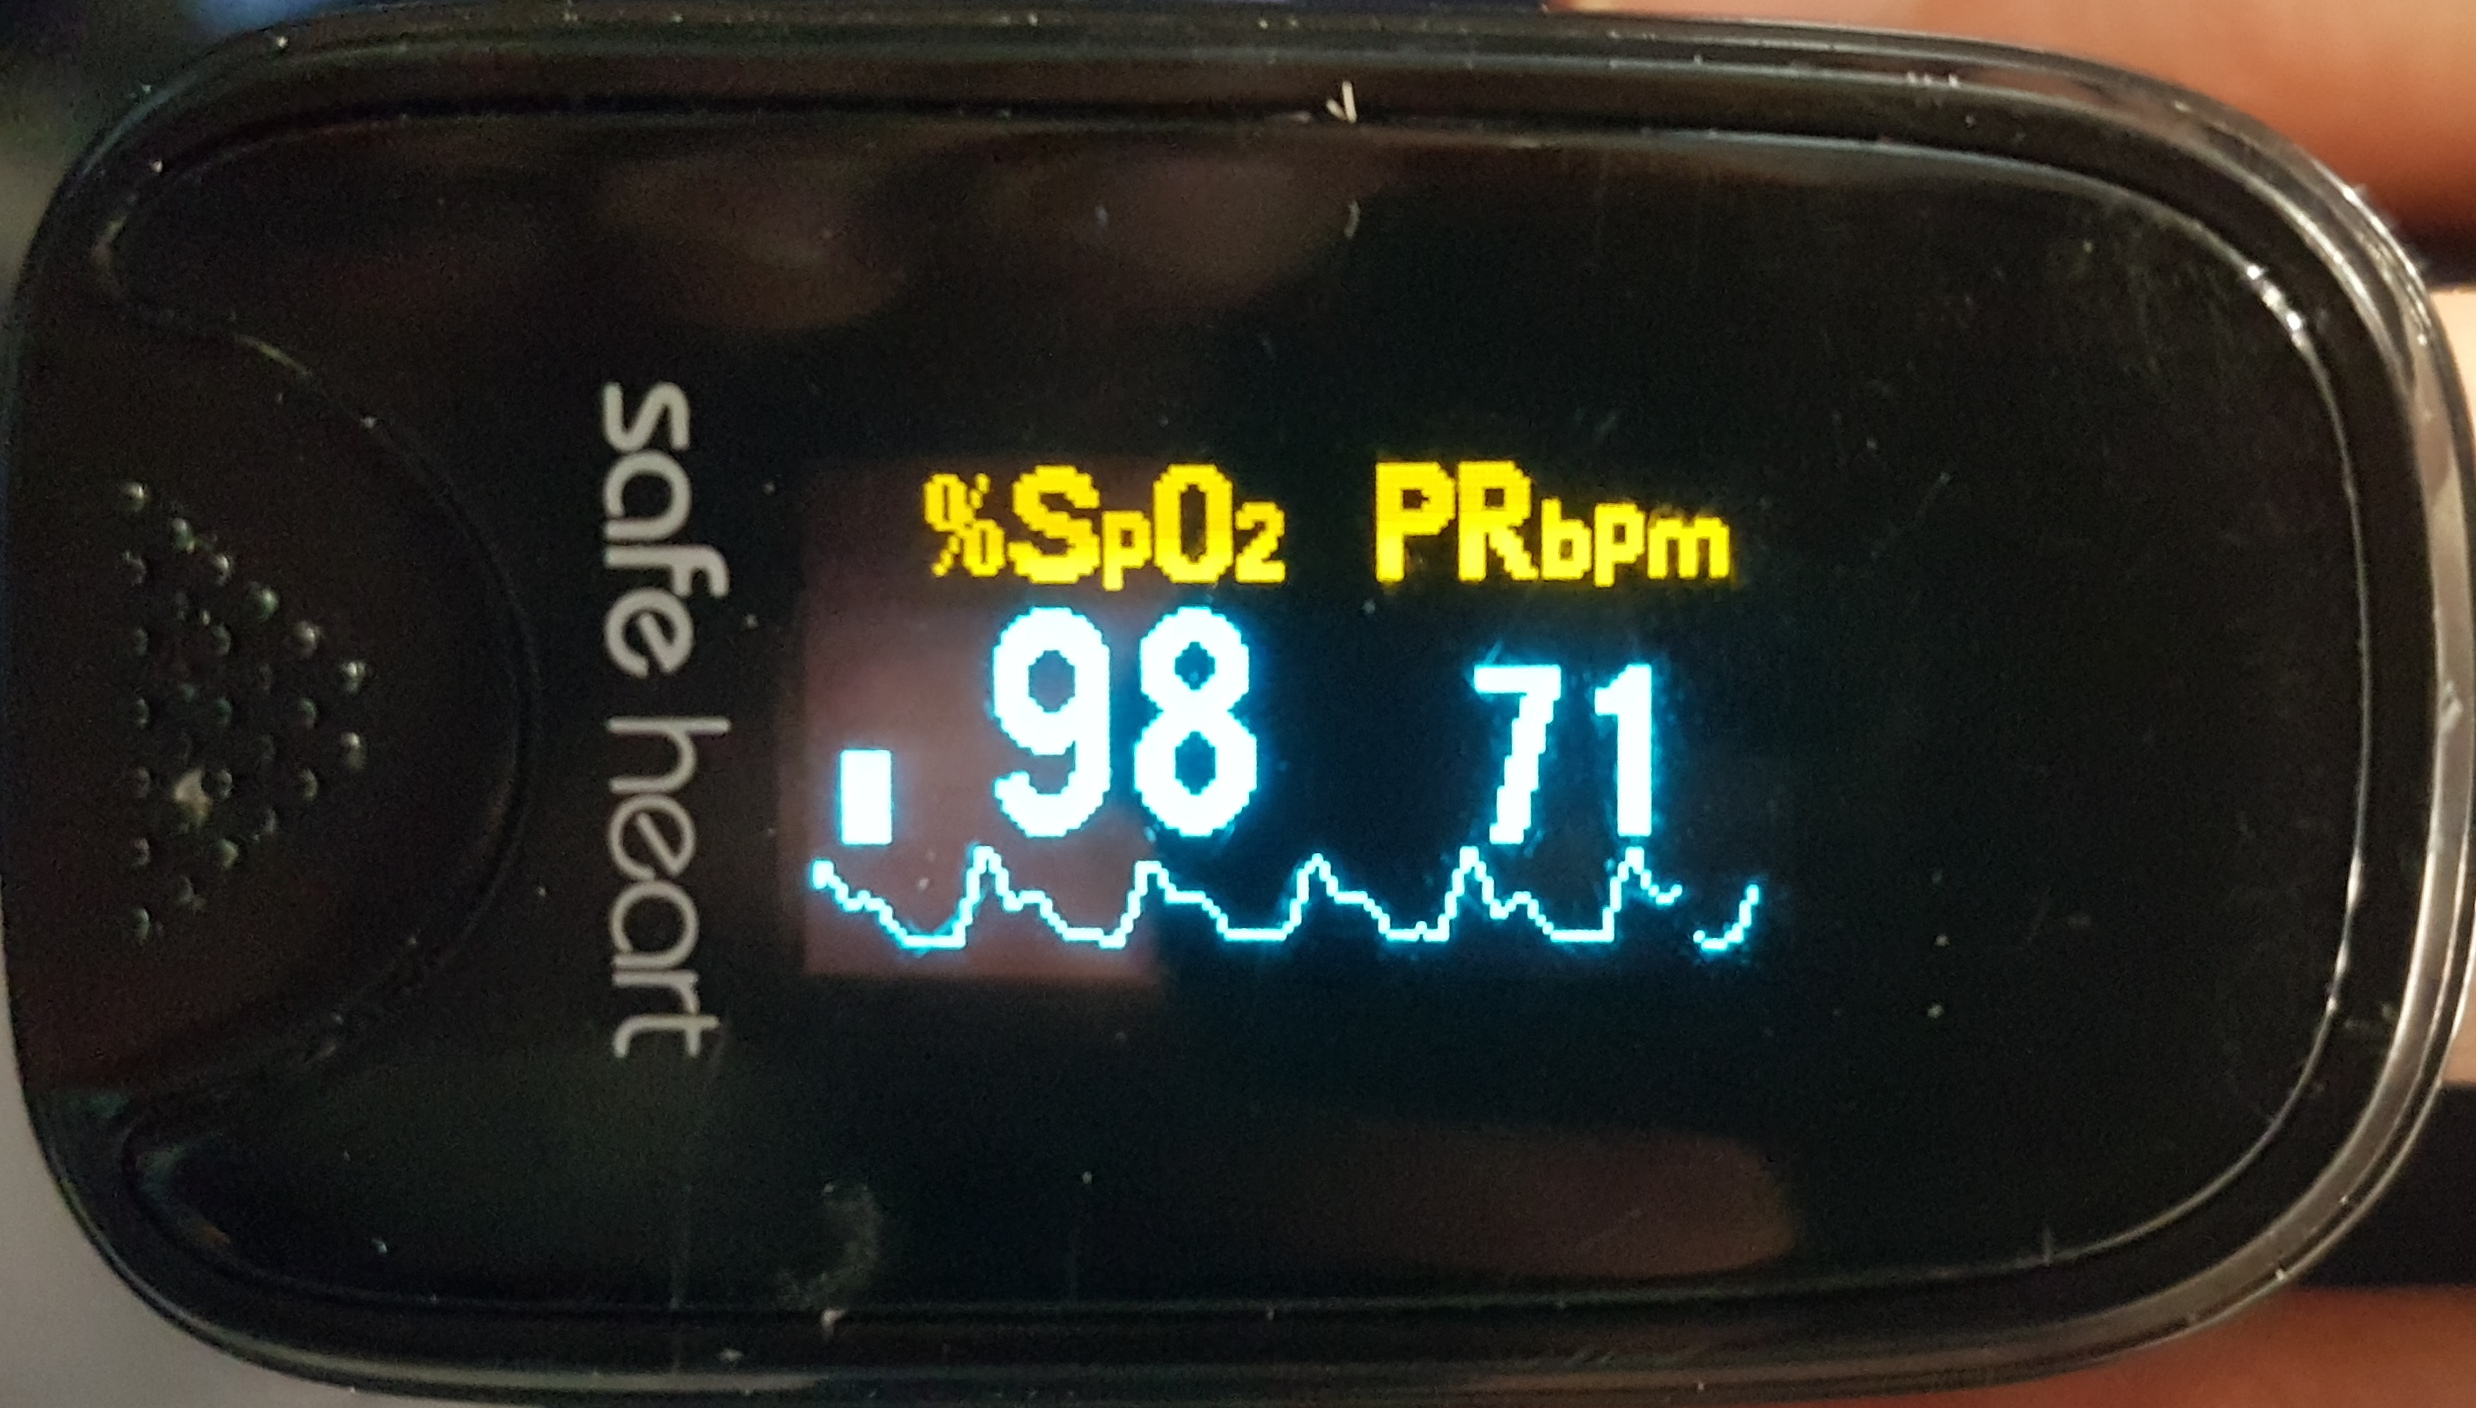 Strong waveform with good dicrotic notch indicating good pulse pressure and perfusion.